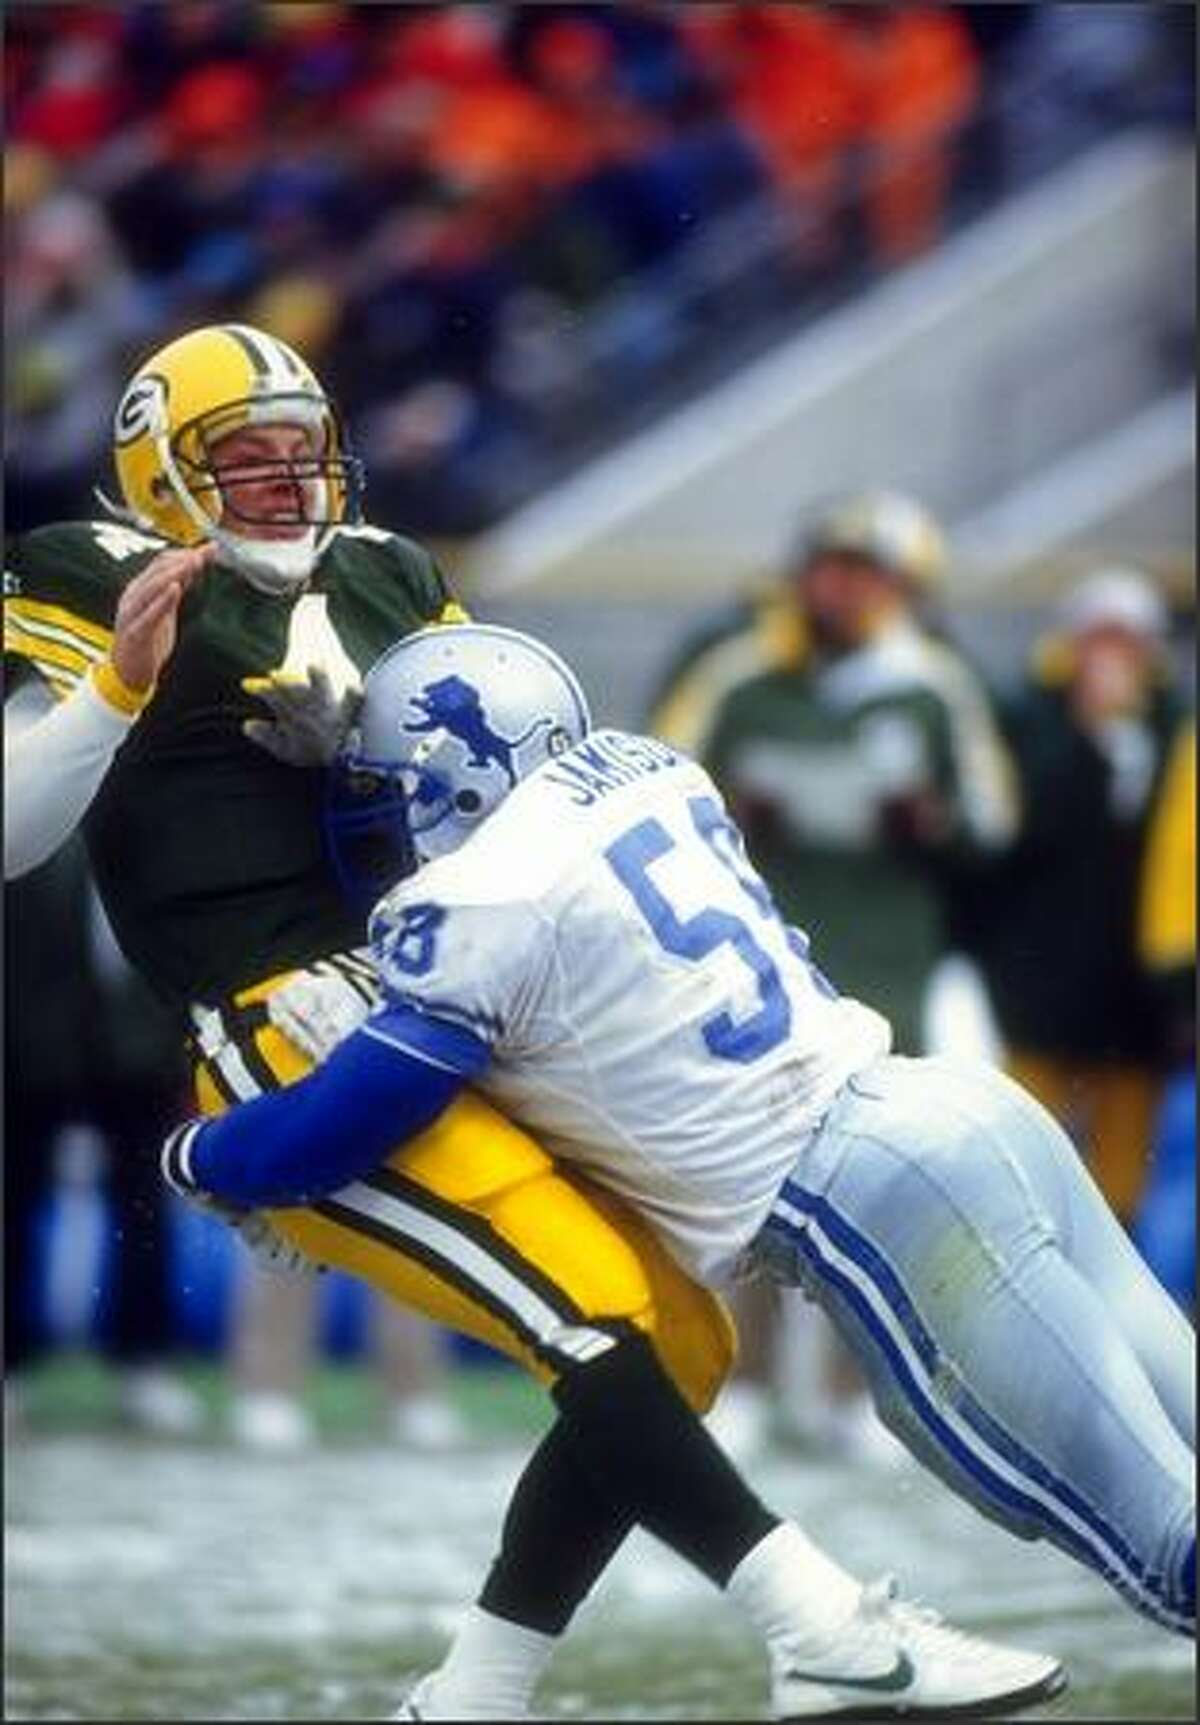 Defensive lineman George Jamison of the Detroit Lions sacks Green Bay Packers quarterback Brett Favre during a game at Milwaukee County Stadium in Milwaukee, Wisconsin, Dec. 6, 1992. The Packers won the game, 38-10.